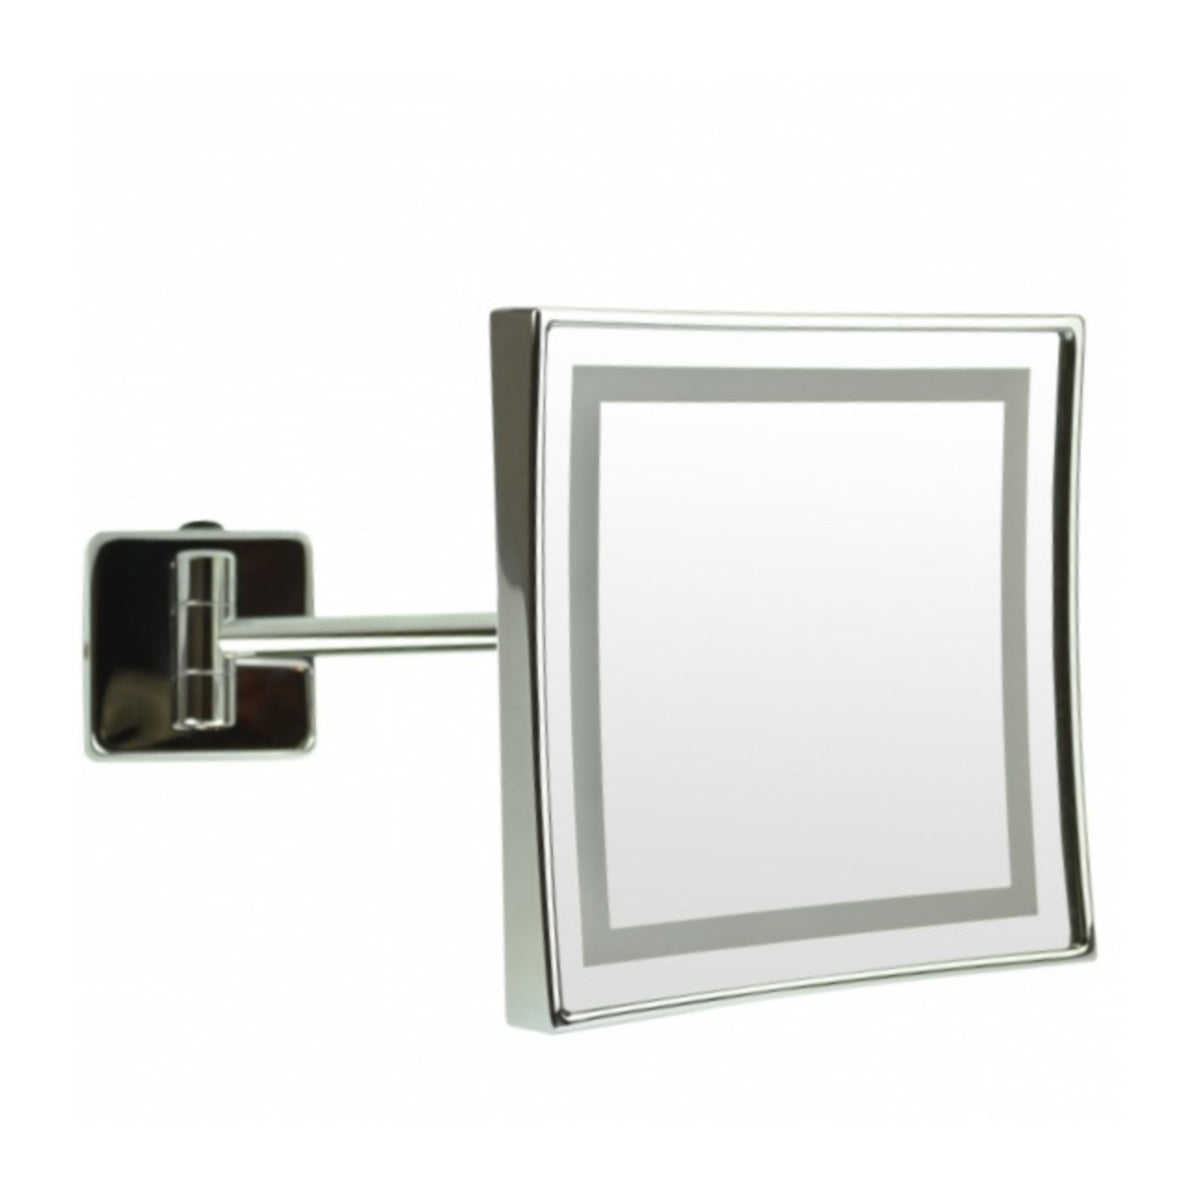 Frasco BiColour LED Mirror, 3x, Square